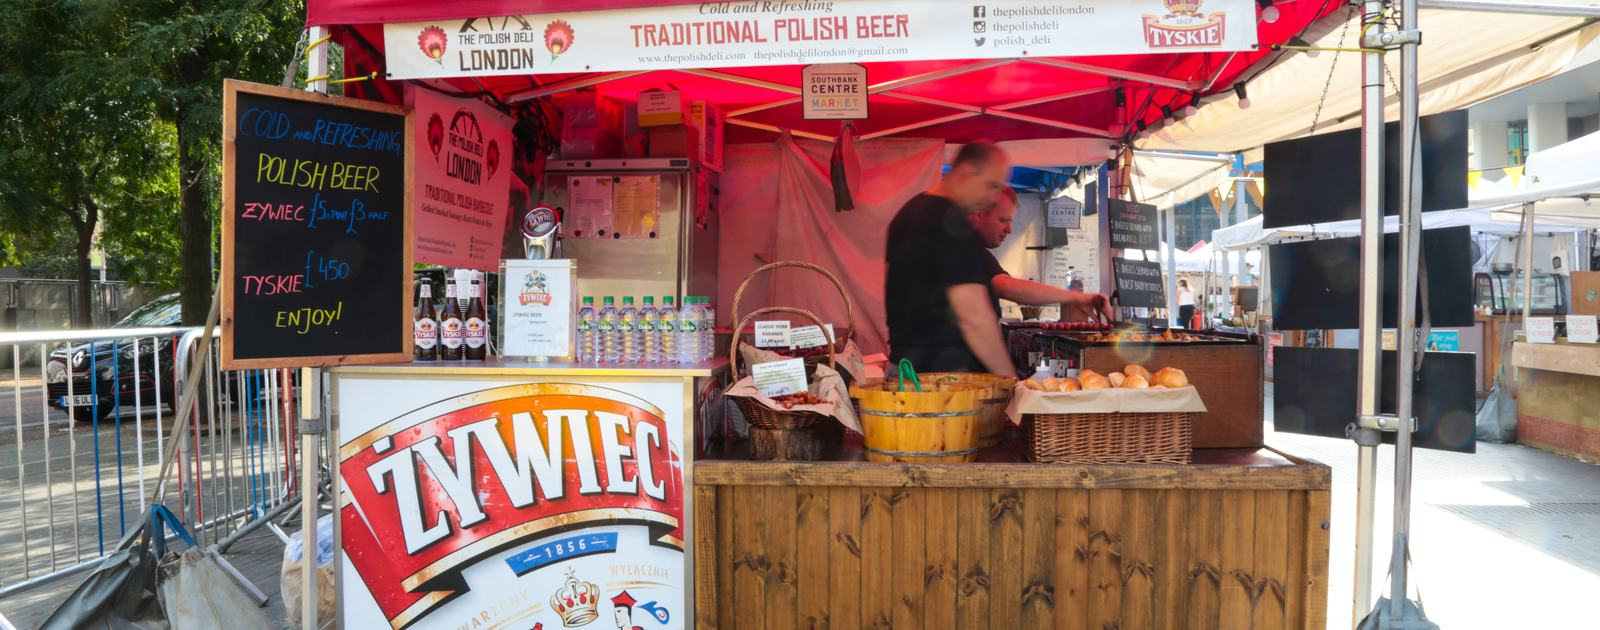 Southbank Centre Food Market.Stall 29- The Polish Deli.August 2016